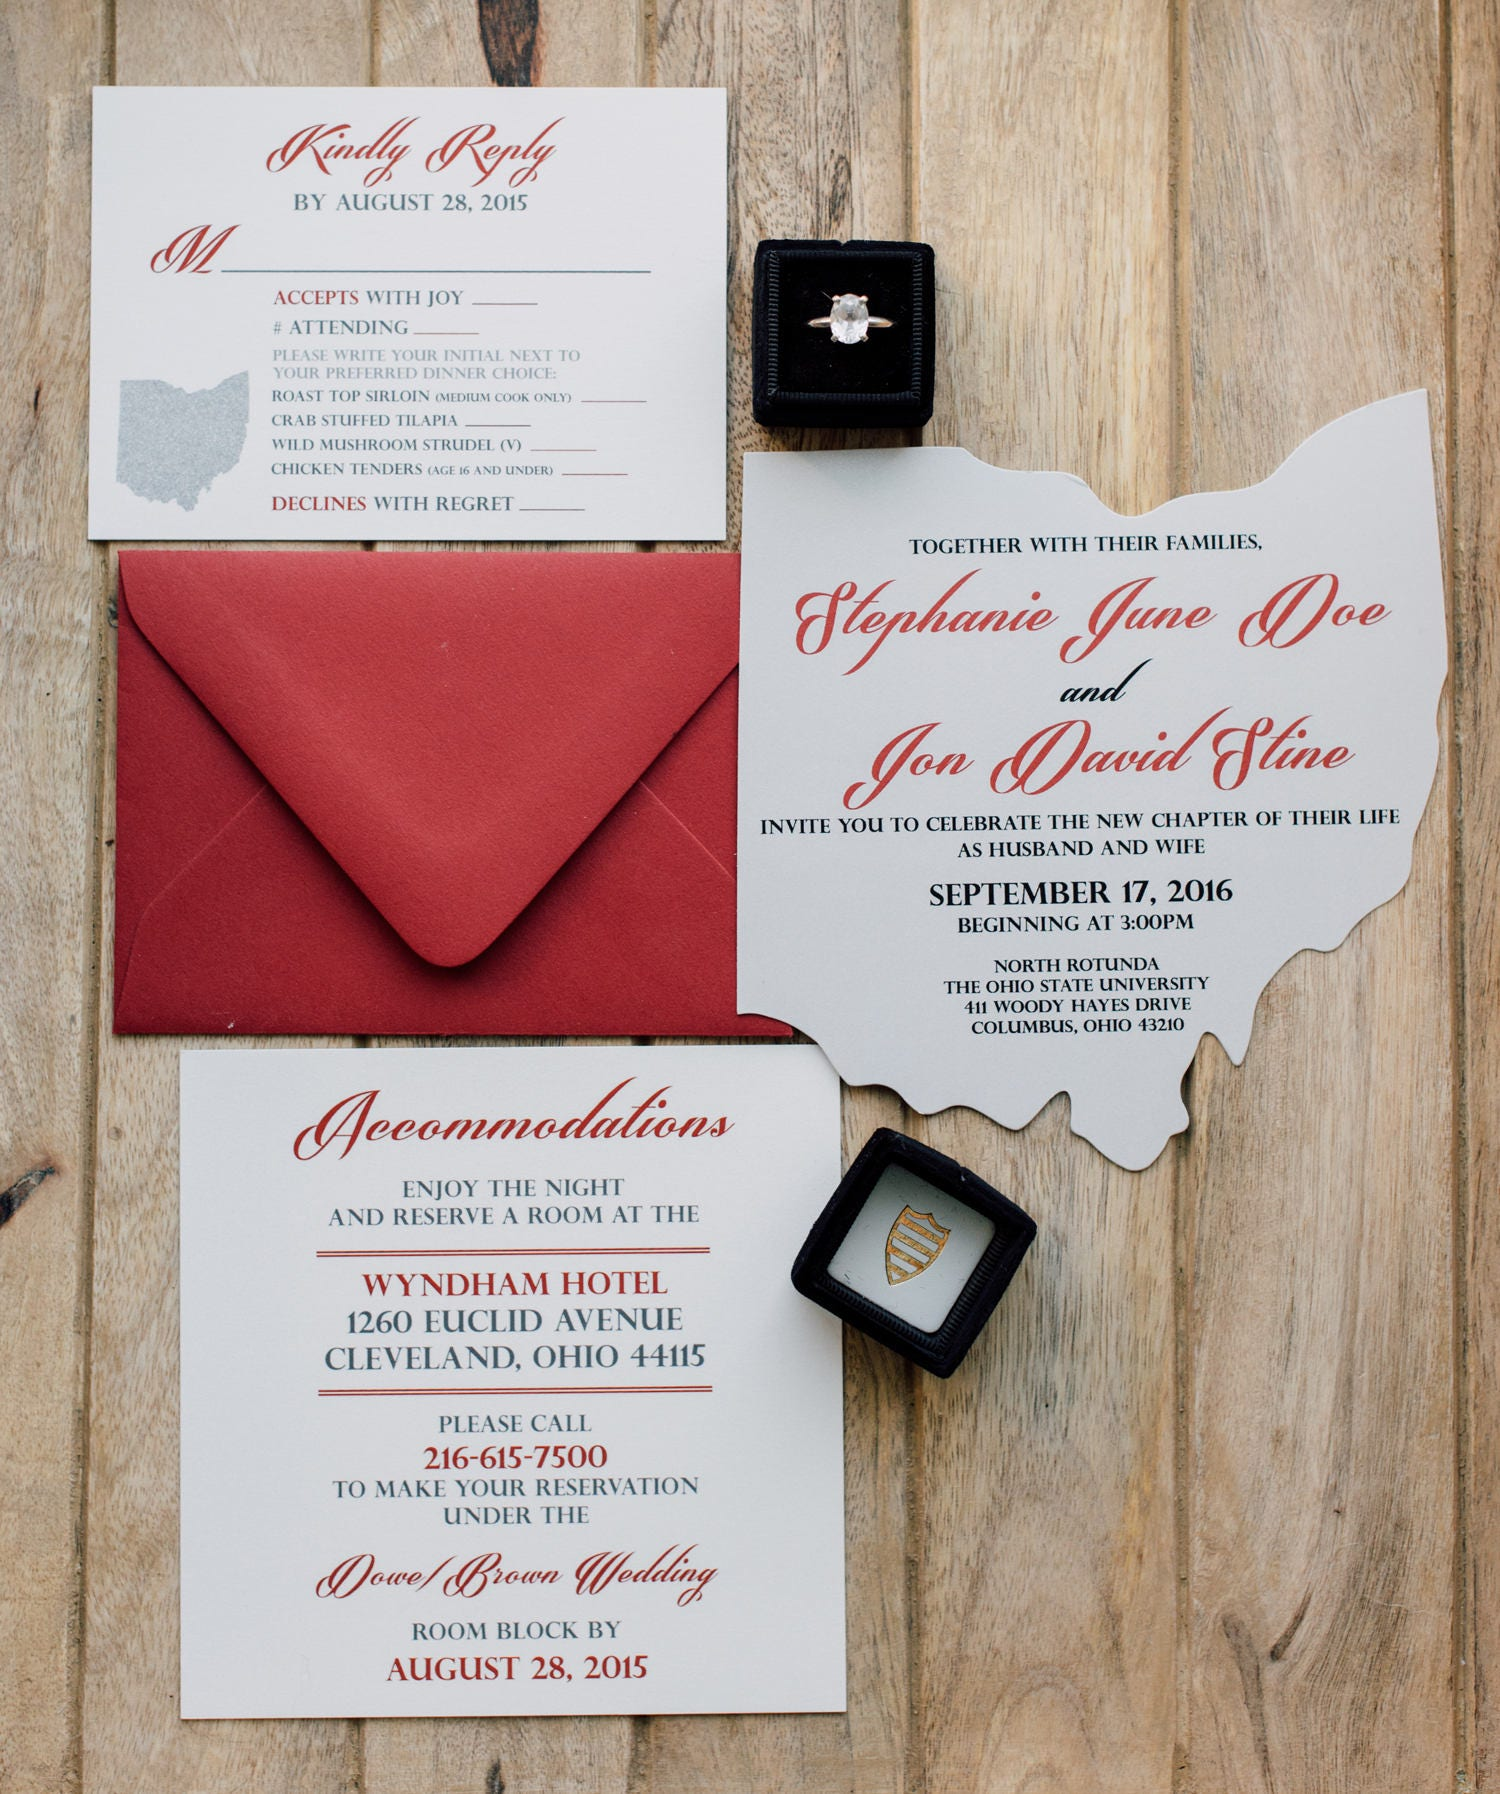 Ohio Cutout Wedding Invitation Scarlet and Grey Wedding | Etsy